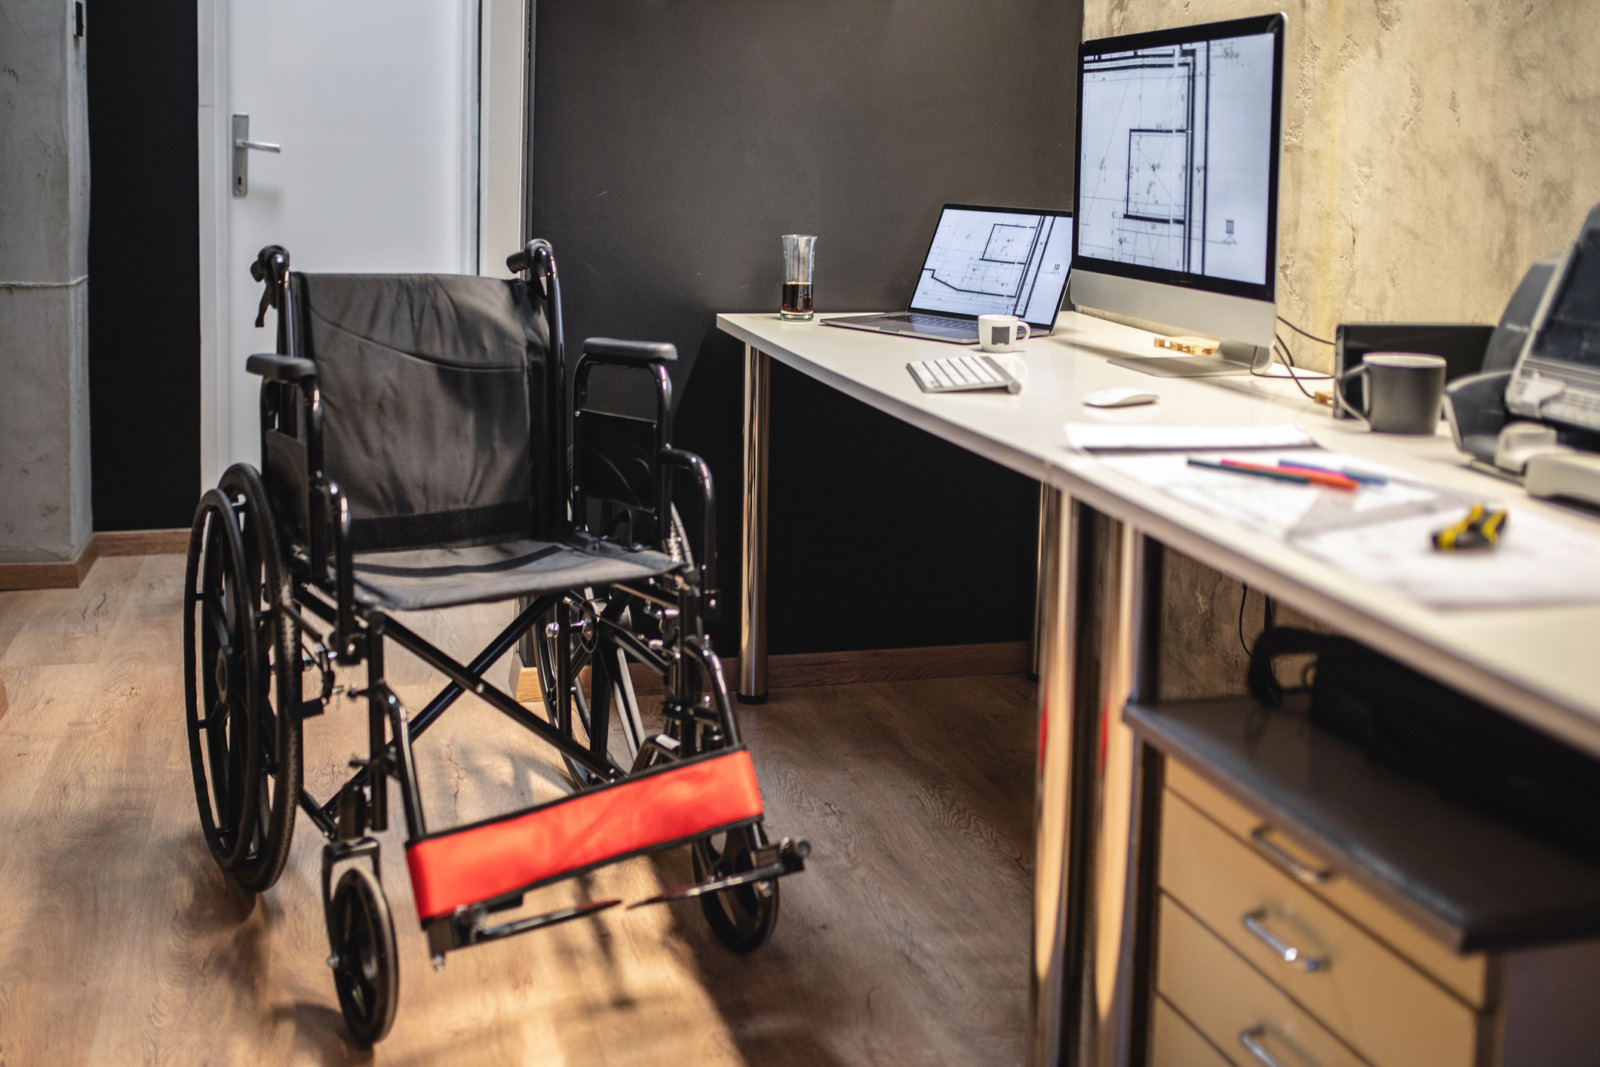 5 Ways to Make Your Workplace More Accessible